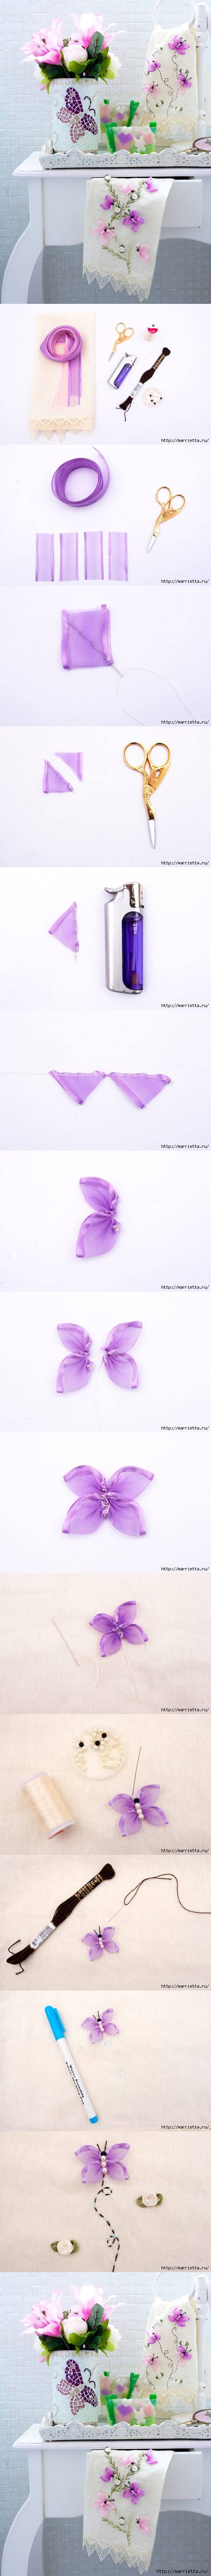 How to make Butterfly Hand Ribbon Embroidery DIY tutorial instructions